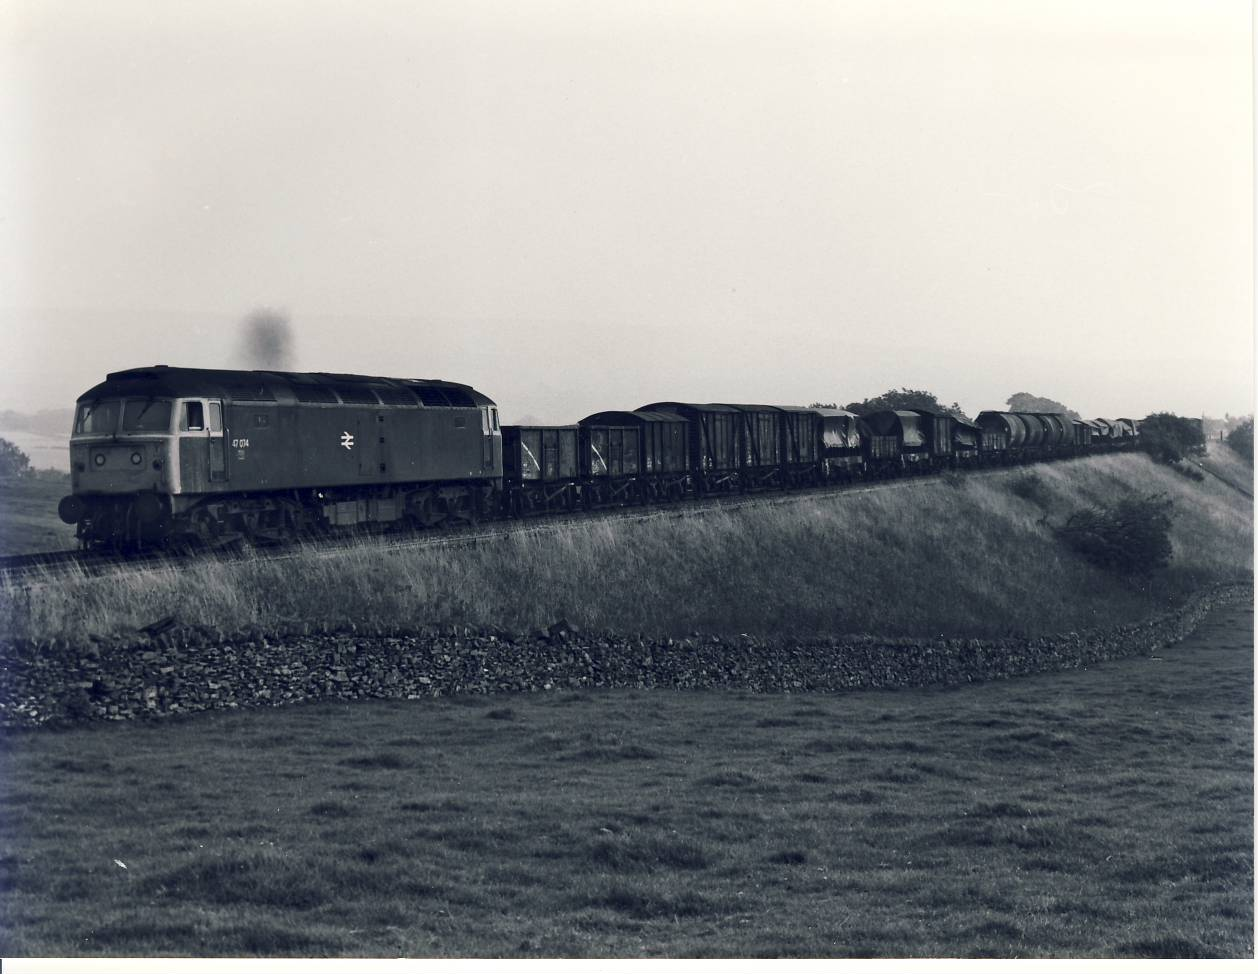 1981 Settle Carlisle Line Freight Train Photo refSC139 Measure approx 6.5 x 8.5 inches / 16cm x 21cm - black and white photographic print pre-owned item in very good condition.